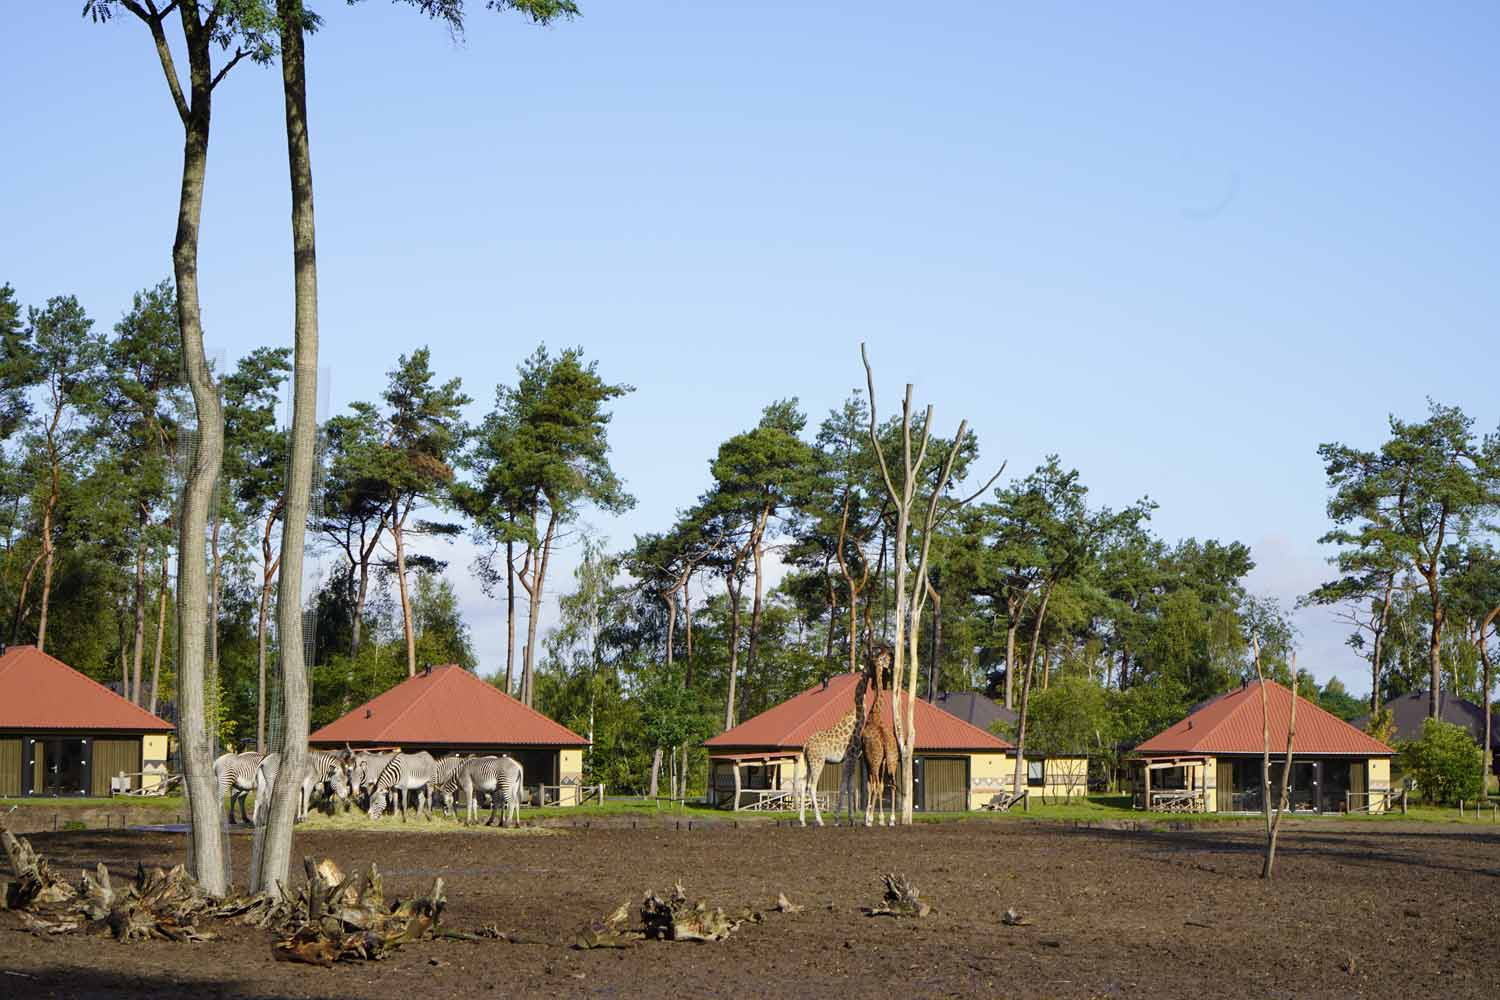 Beekse Bergen Safari Resort – Afrika-Feeling in den Niederlanden